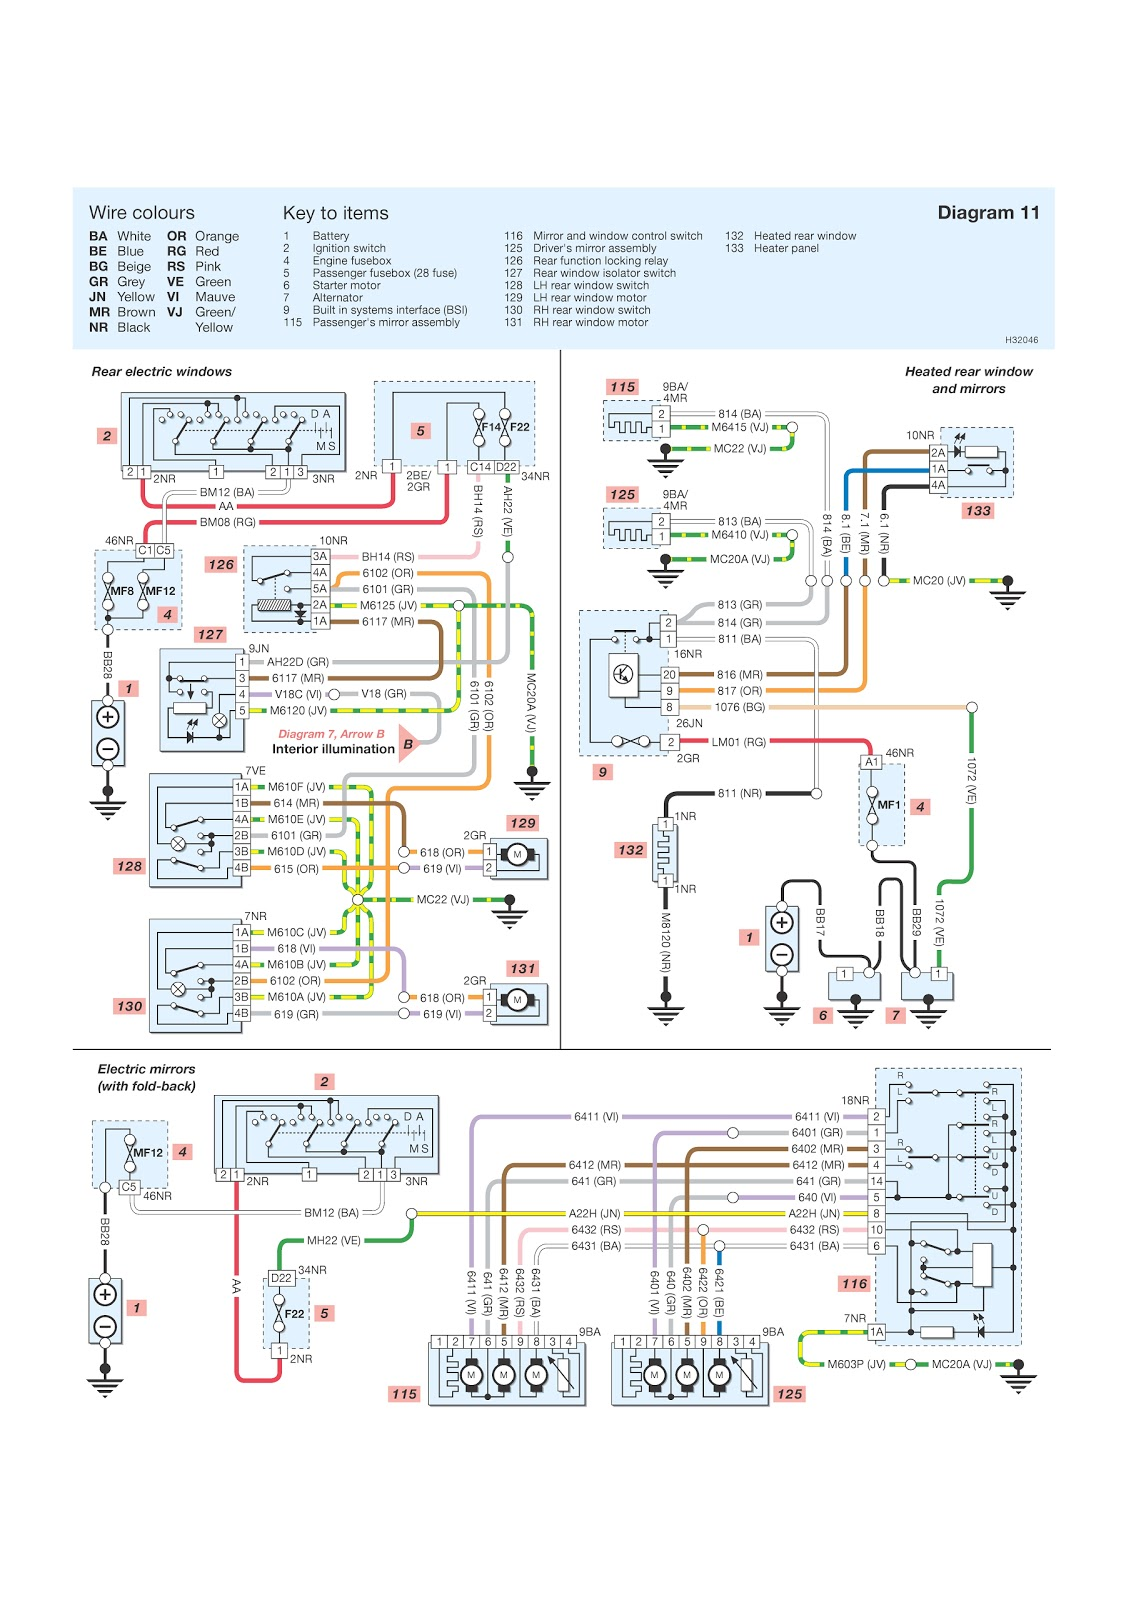 Airbag shunt wiring diagram wiring diagram magnificent airbag wiring diagram pattern best images for wiring rh oursweetbakeshop info 2 pole breaker wiring diagram ammeter wiring diagram asfbconference2016 Images